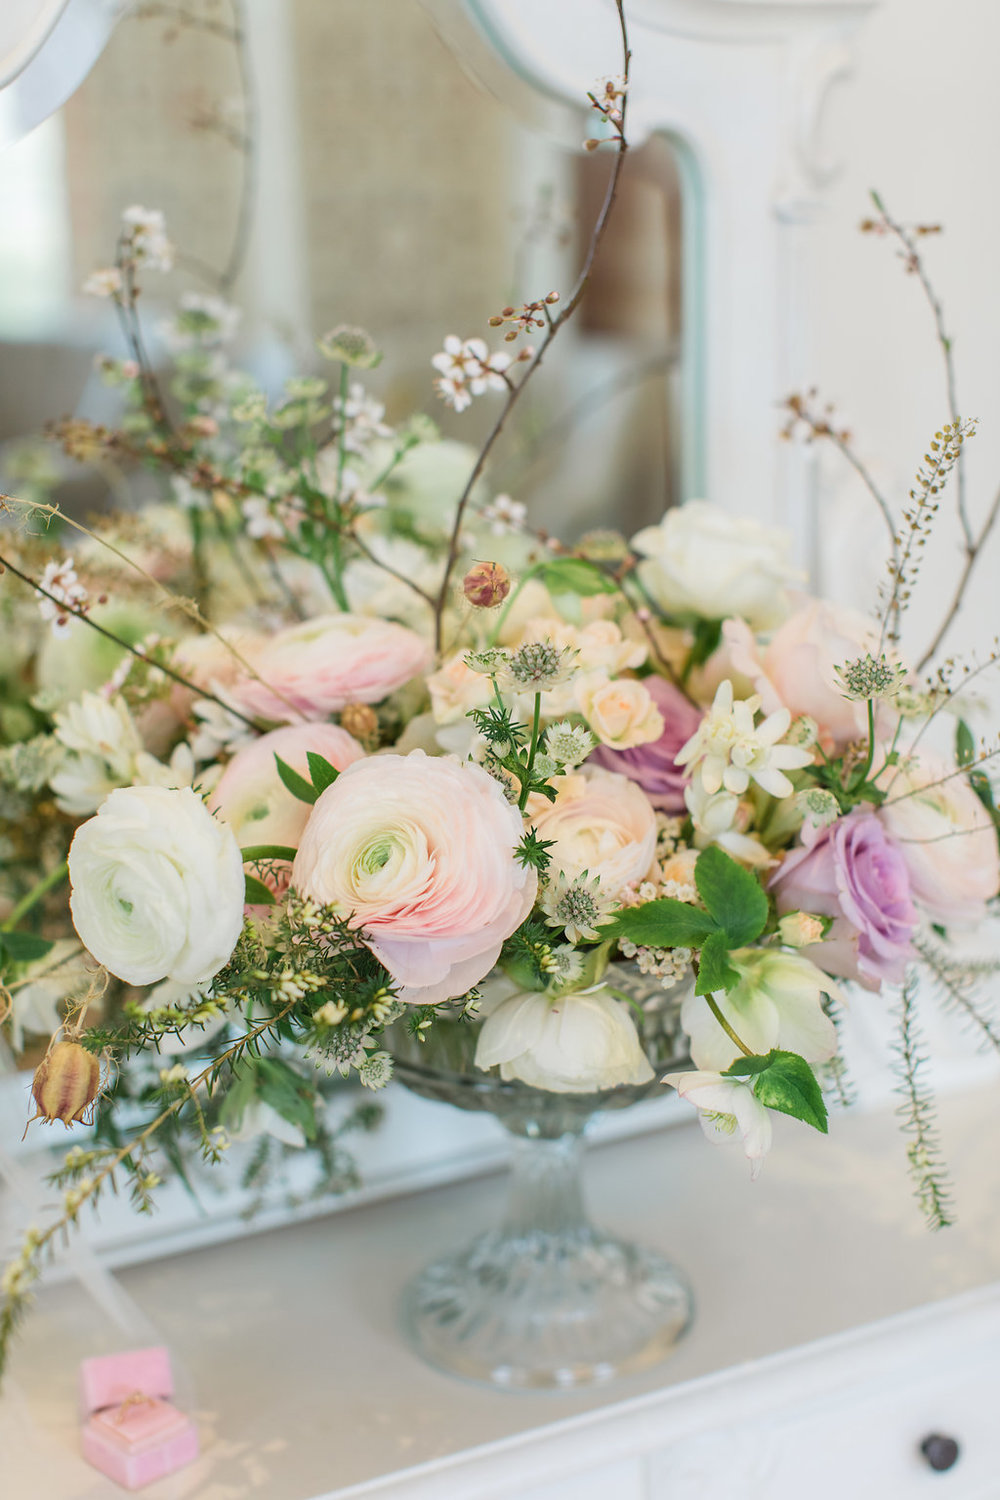 The Timeless Stylist-Elegant and Romantic Wedding Styling-Spring Wedding Flowers